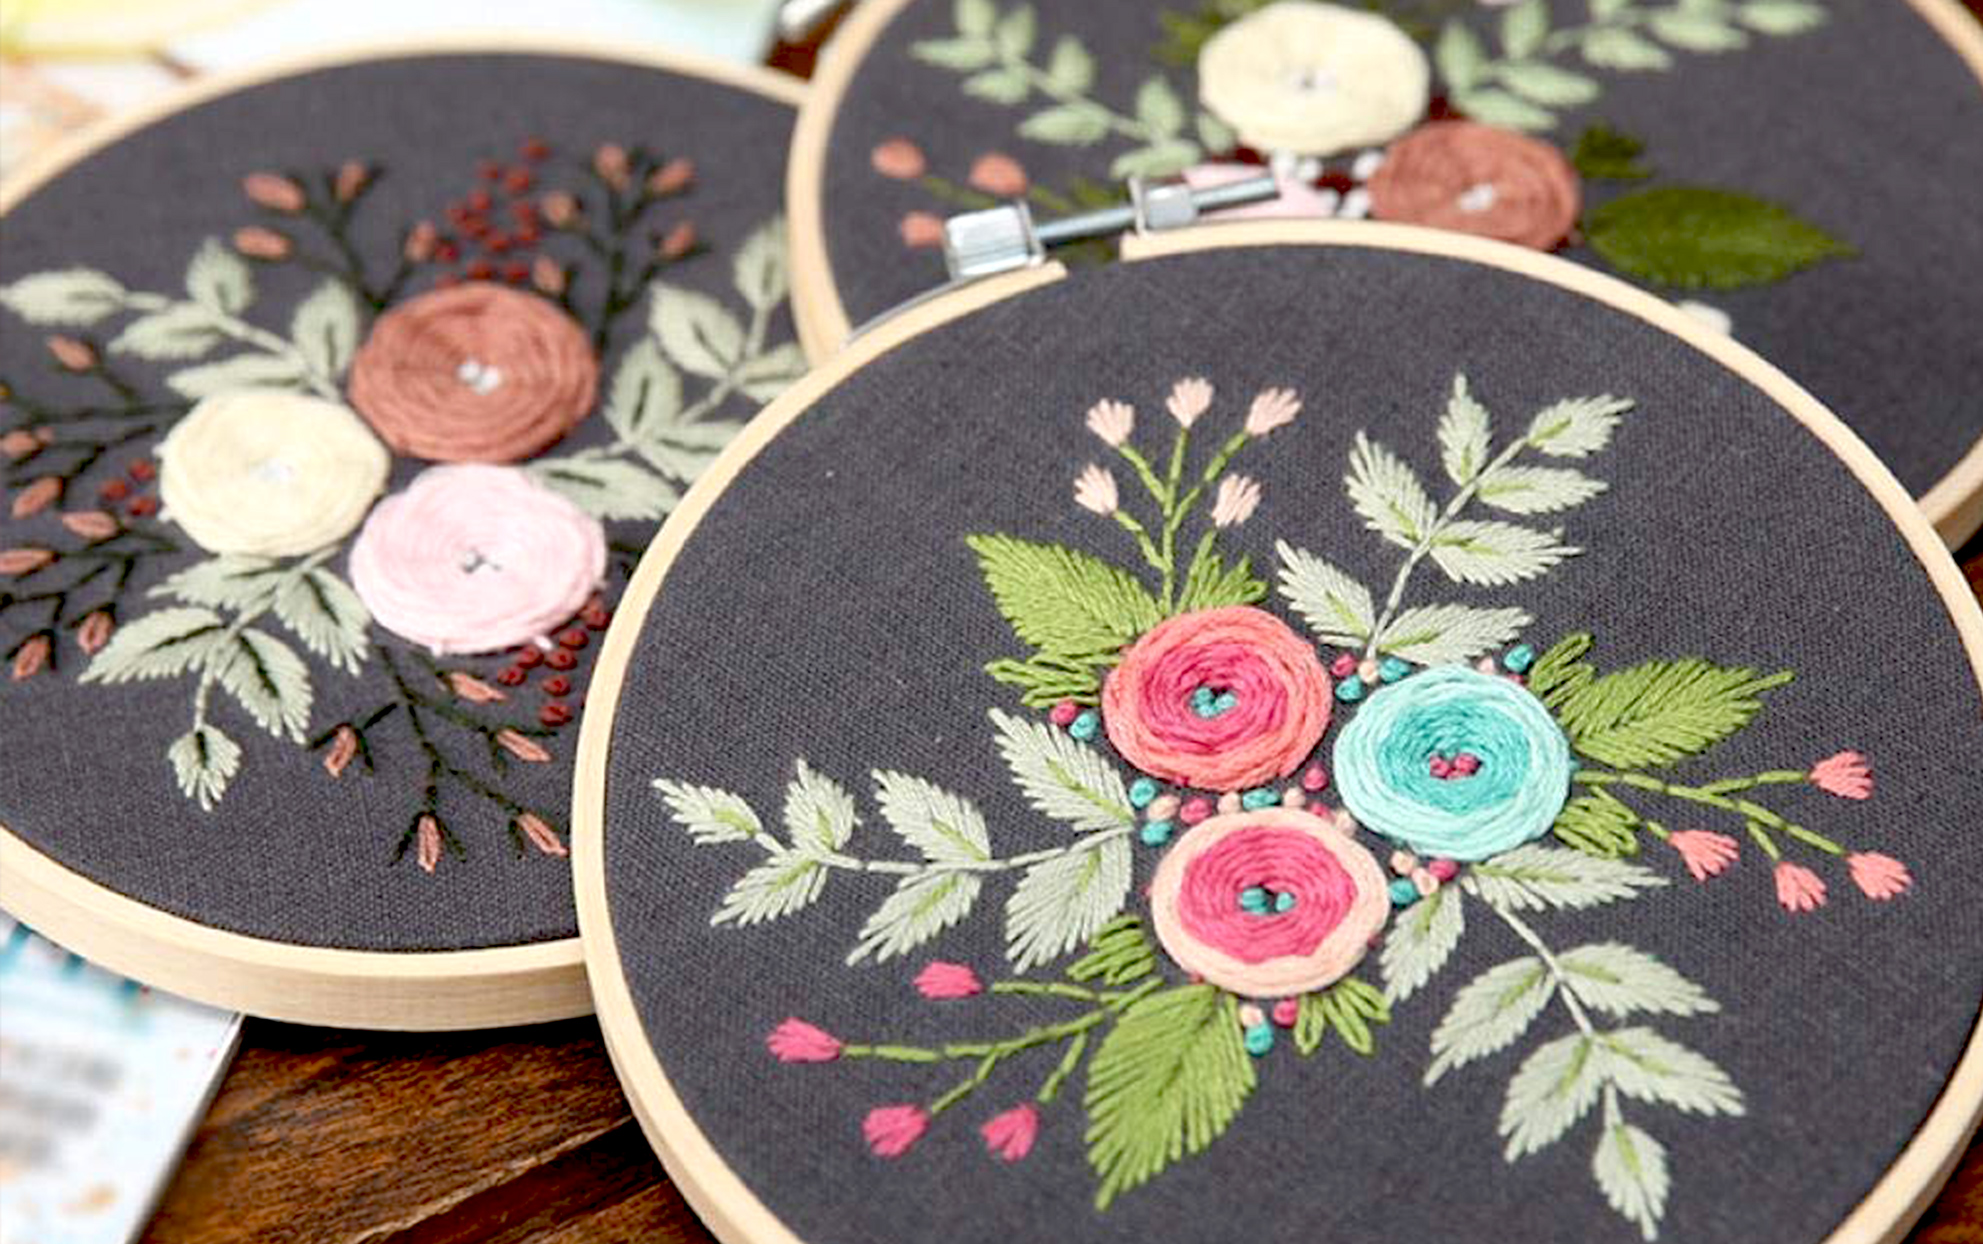 three floral embroidery hoops on a wooden table